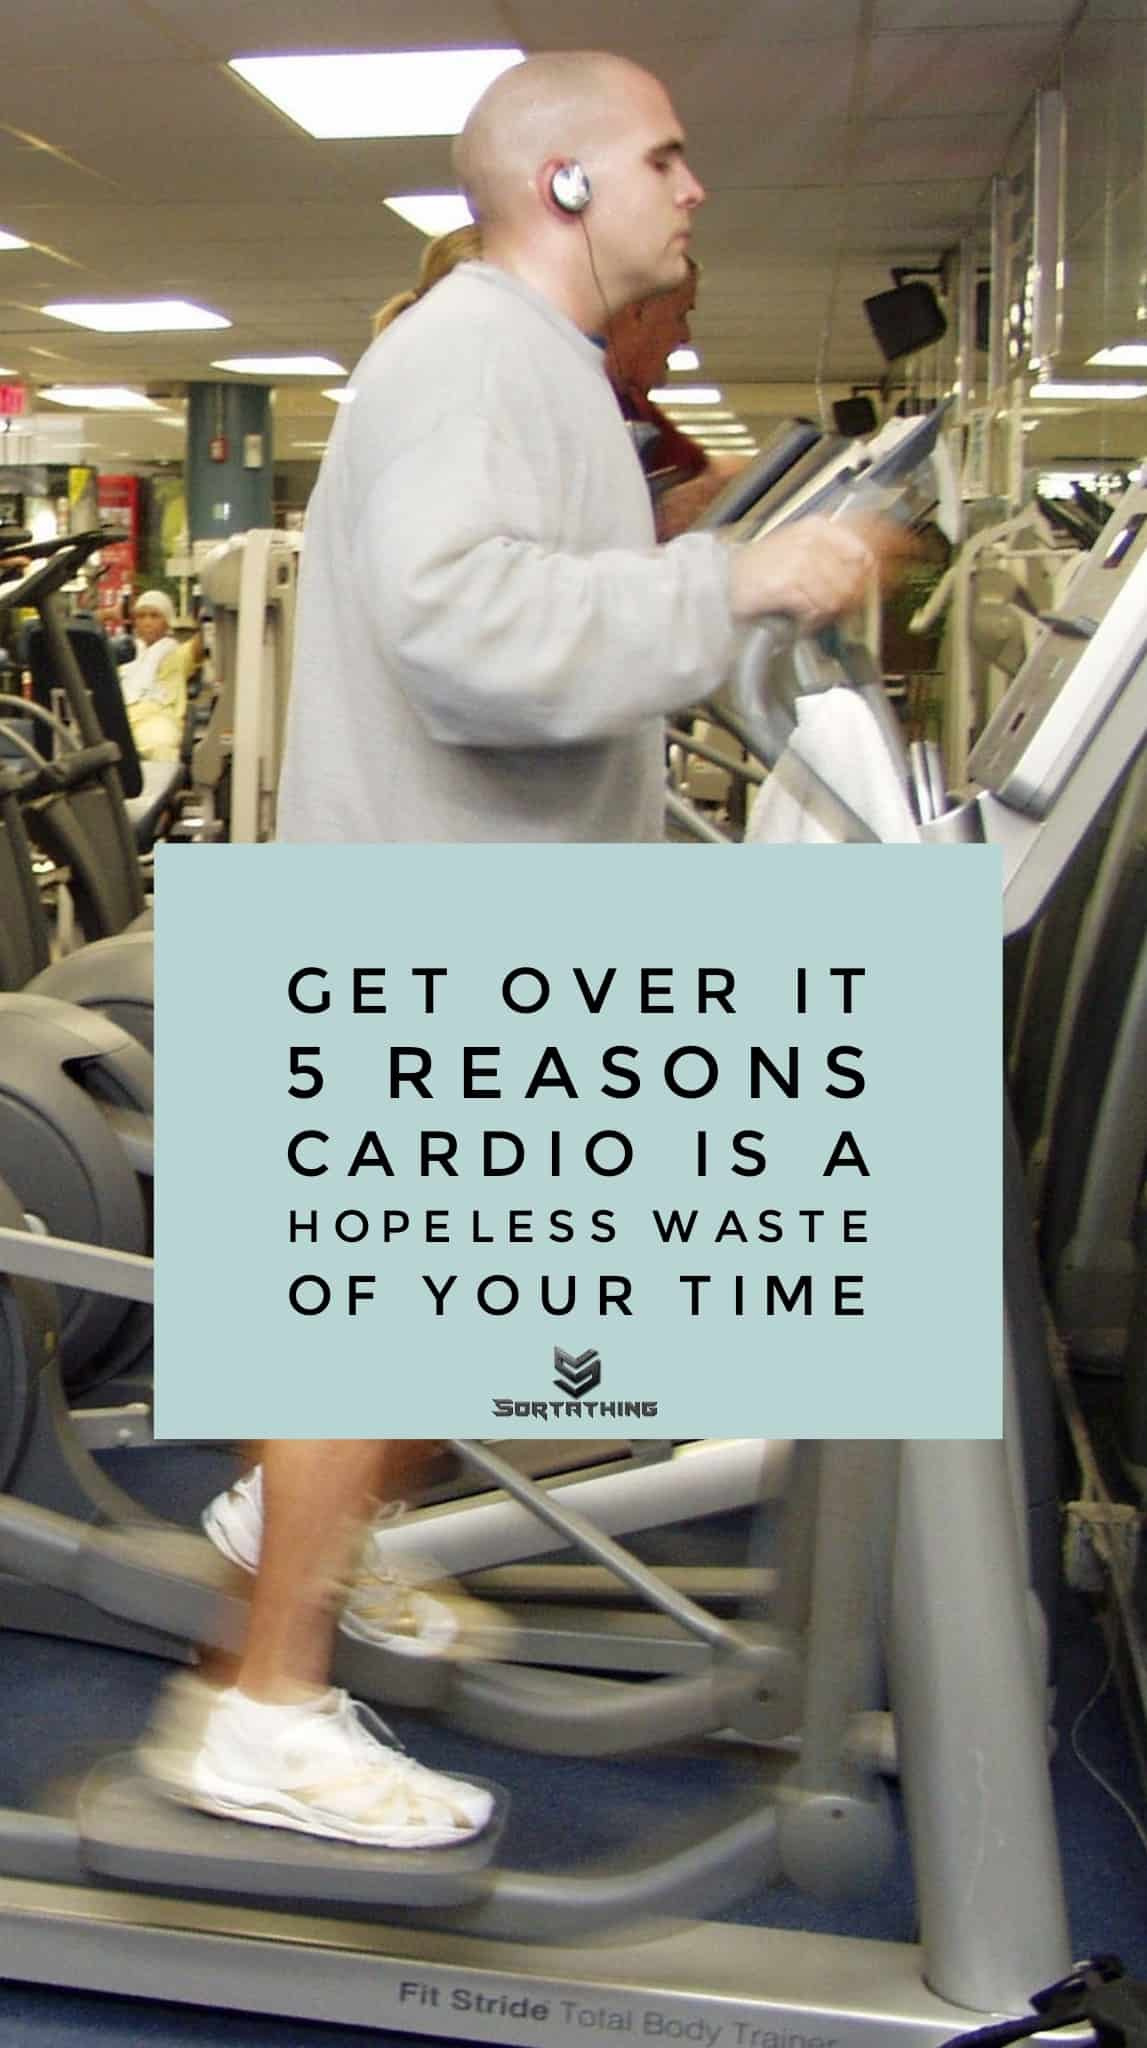 Weight - Expensive - Cardio Waste of Time